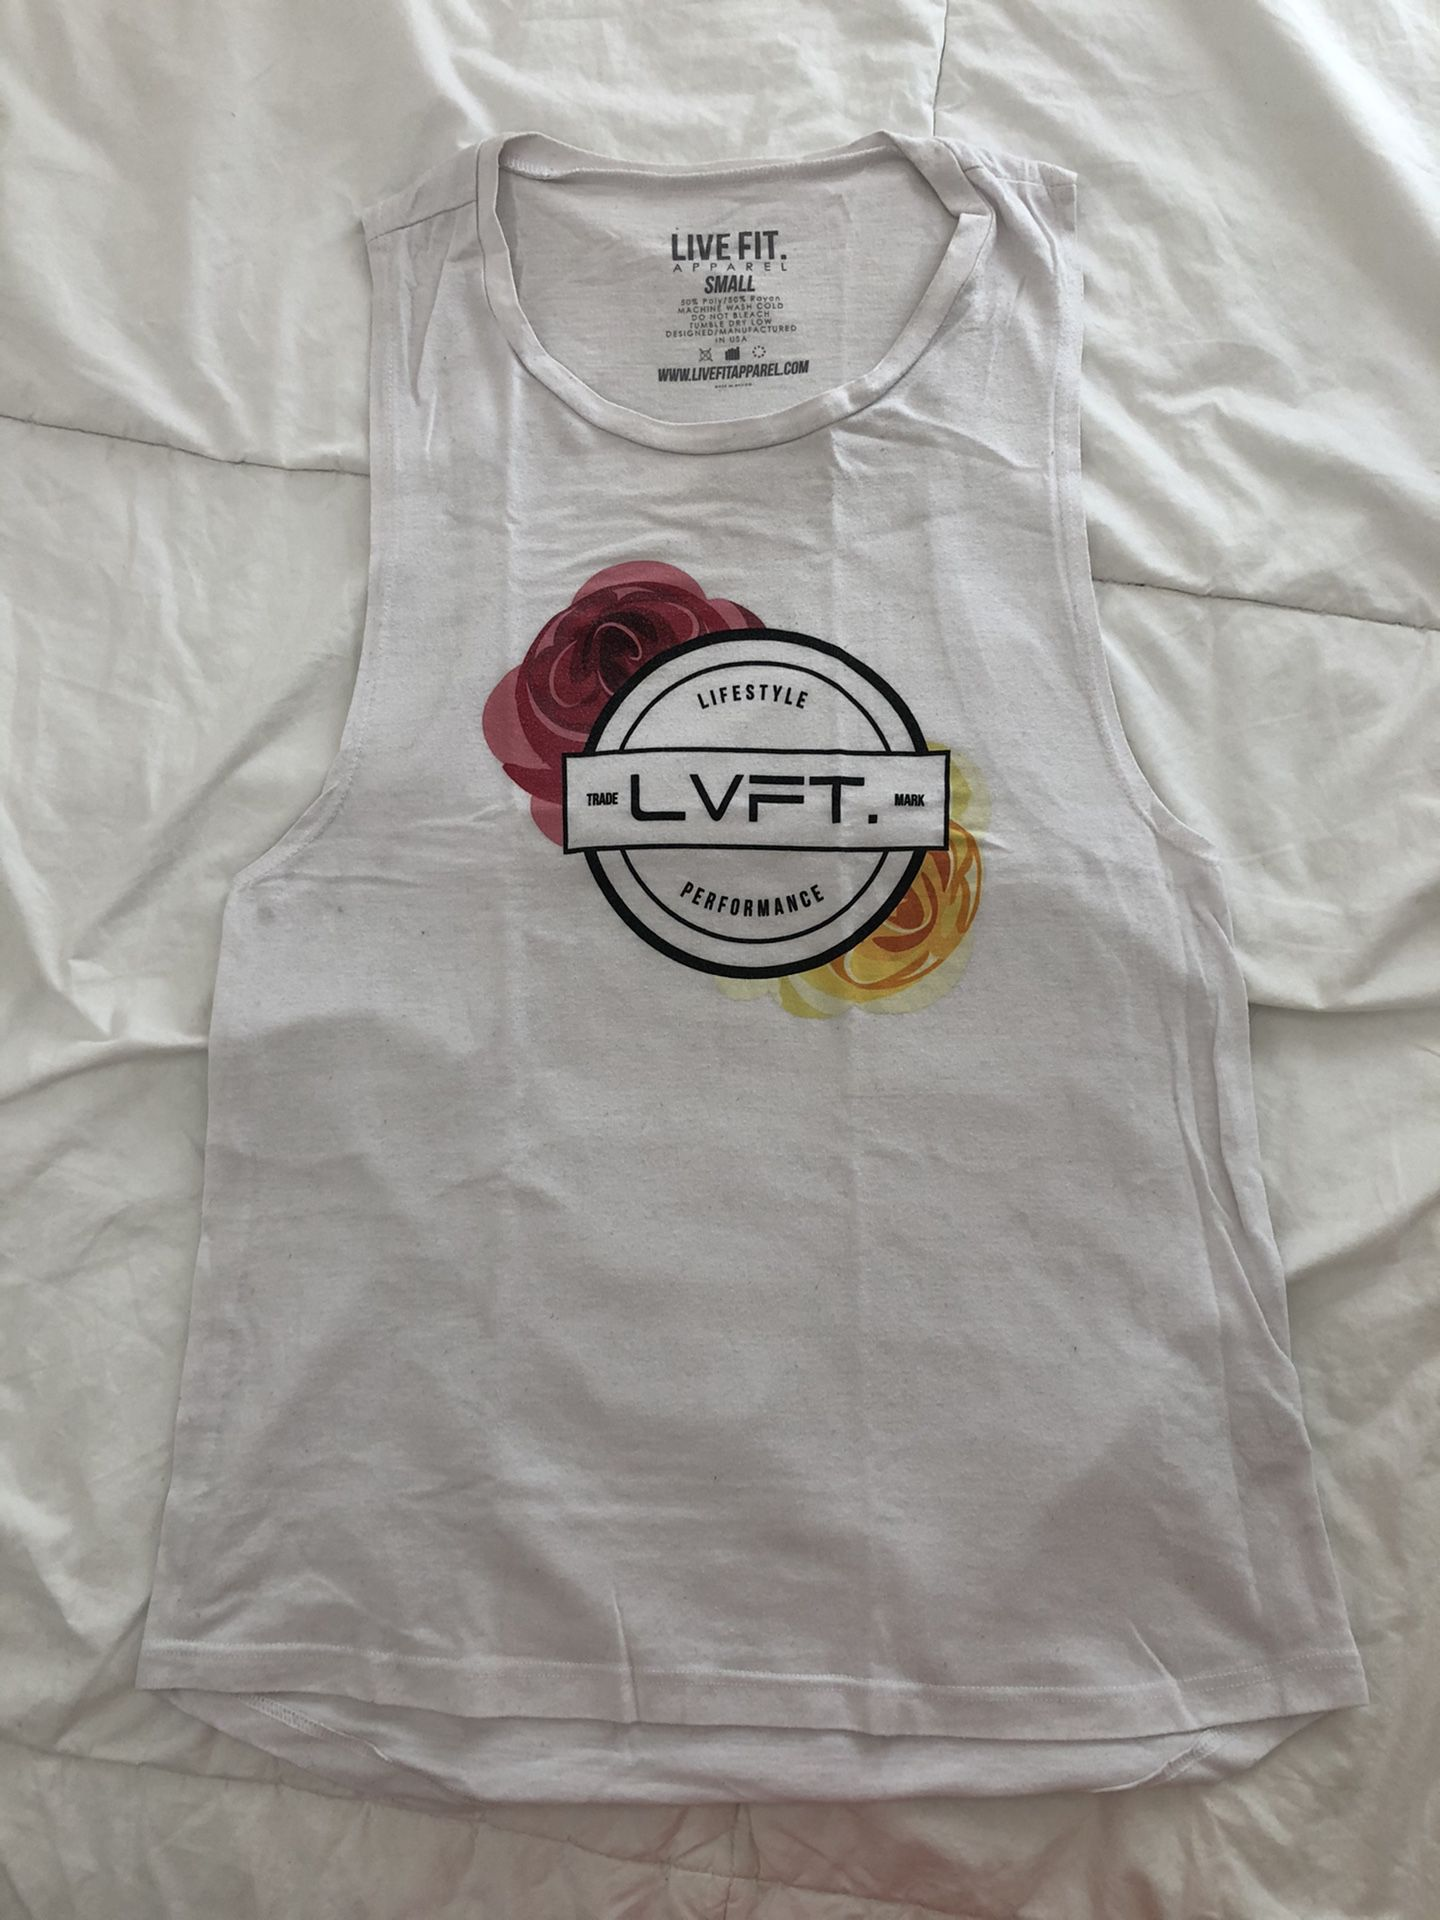 Livefit muscle tee